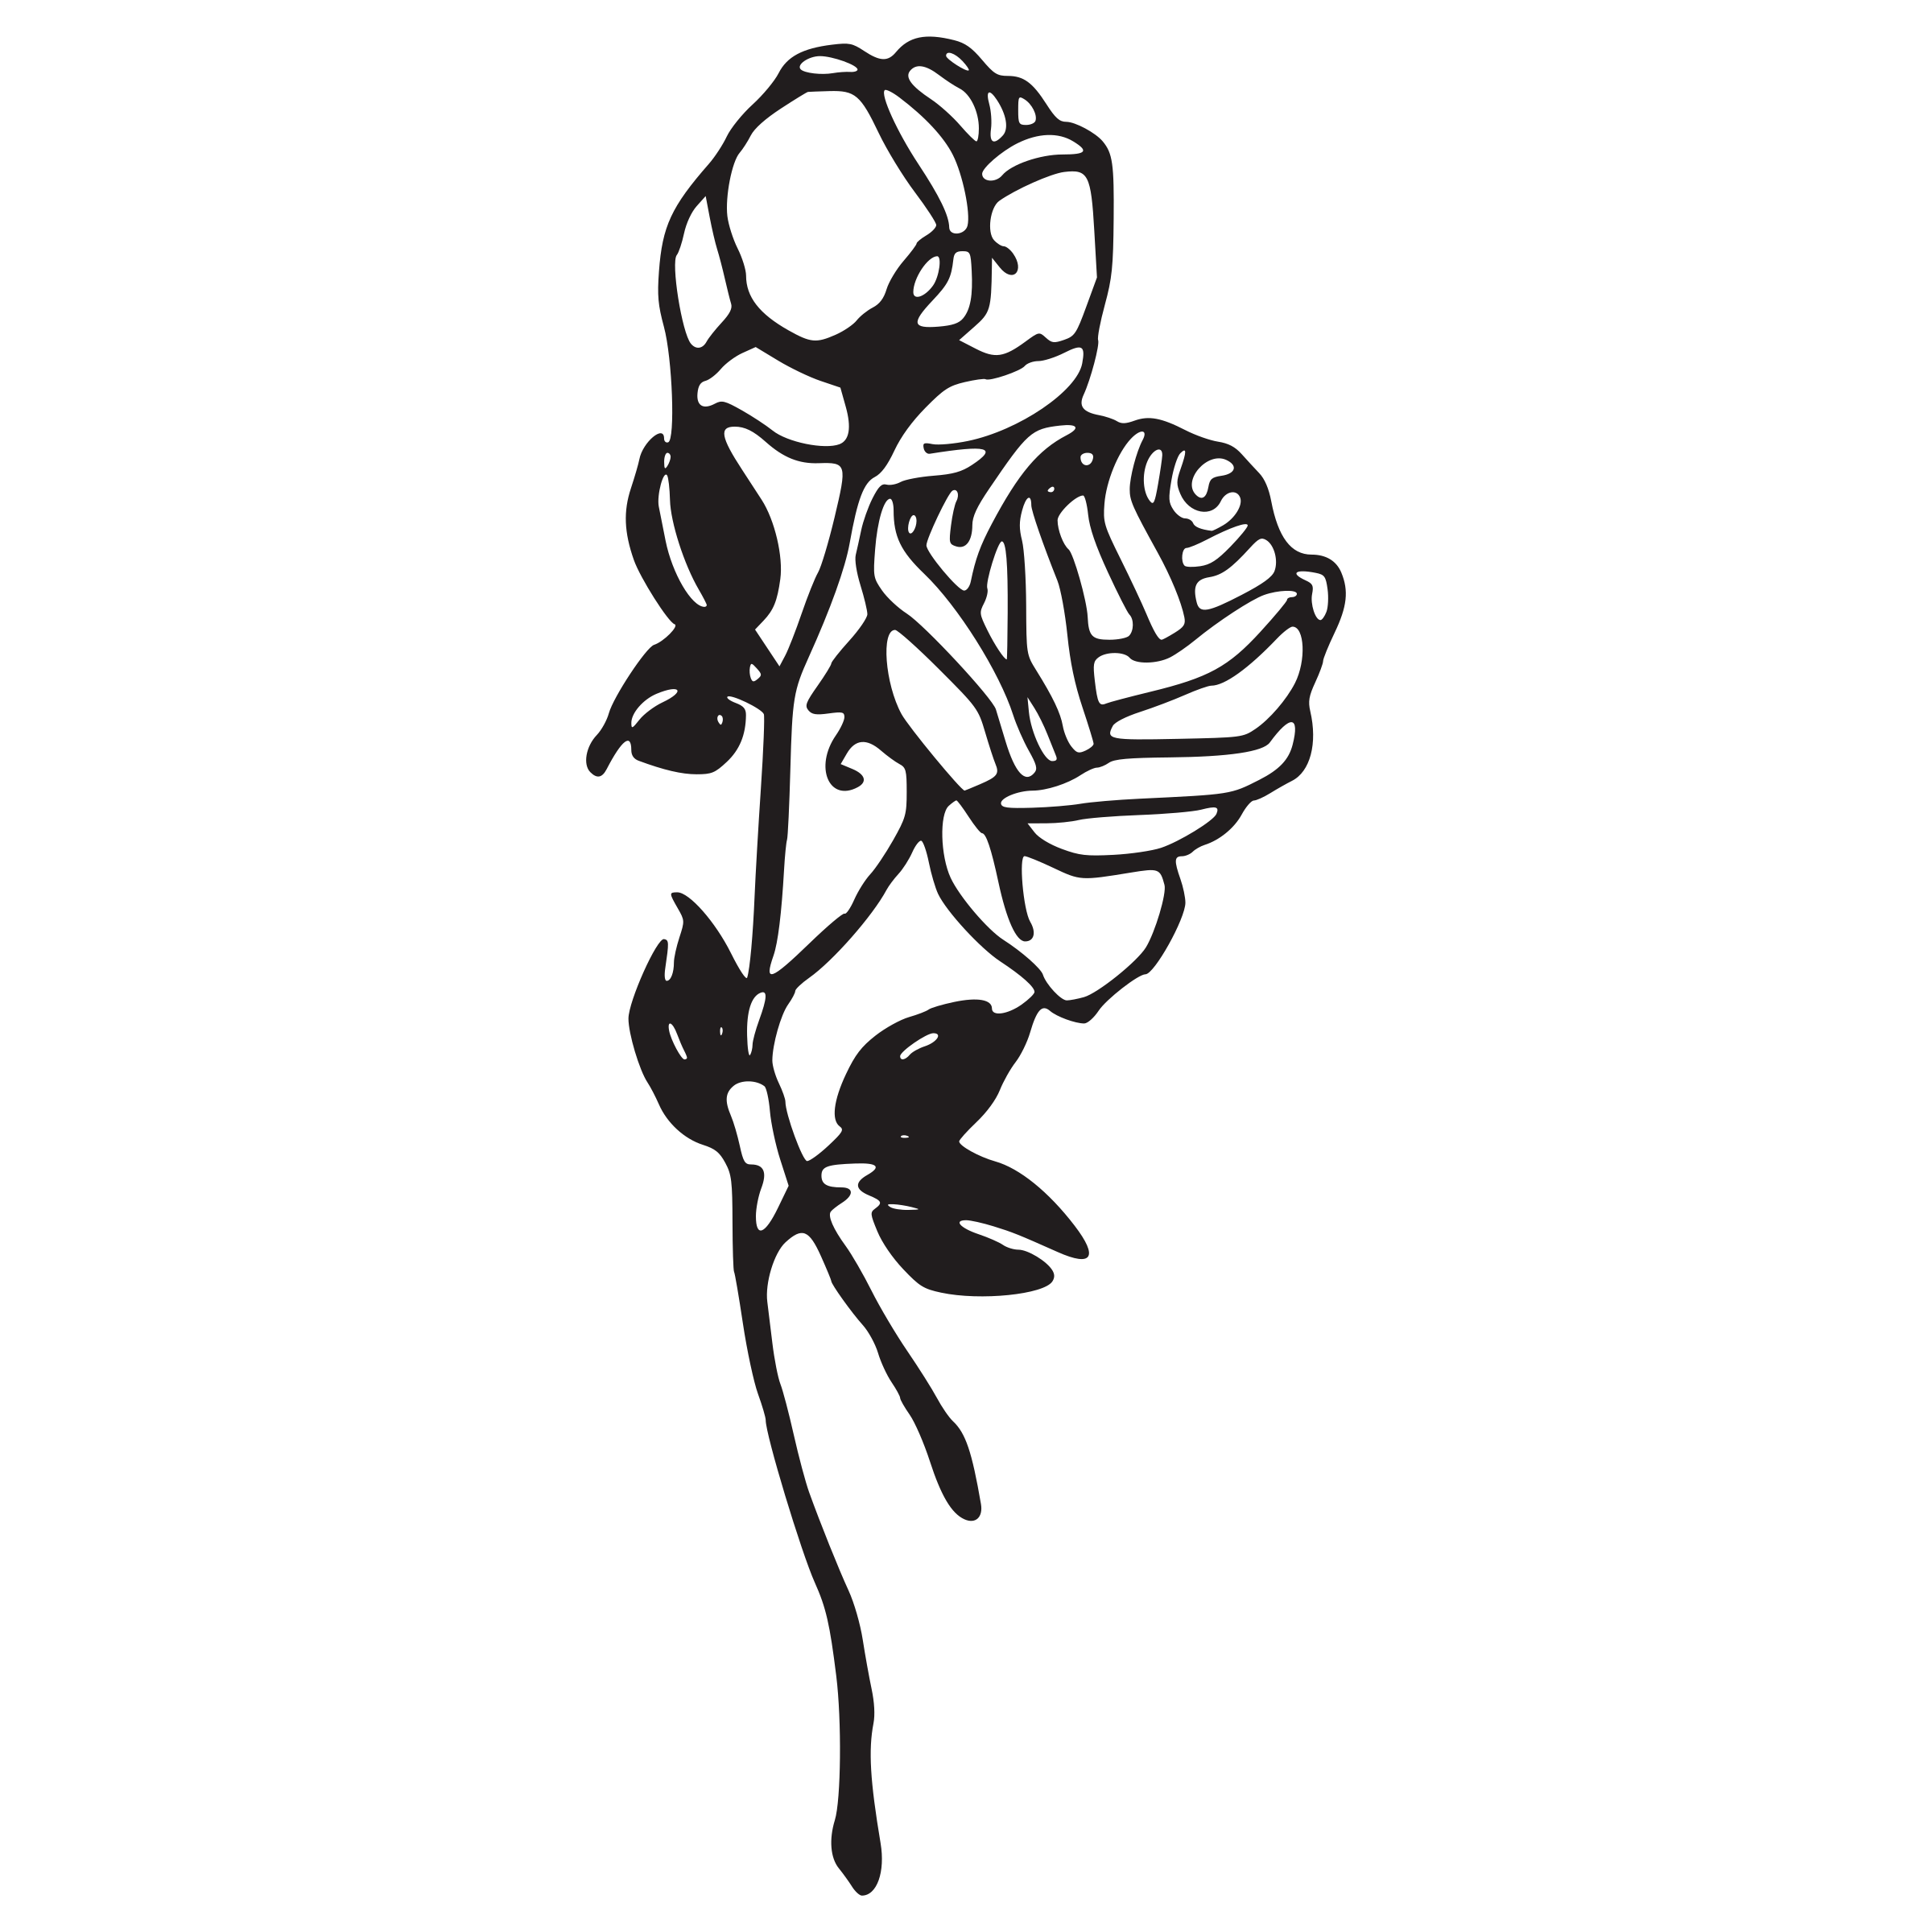 Flower stem black and white clipart vector stock Clipart - Two Roses vector stock